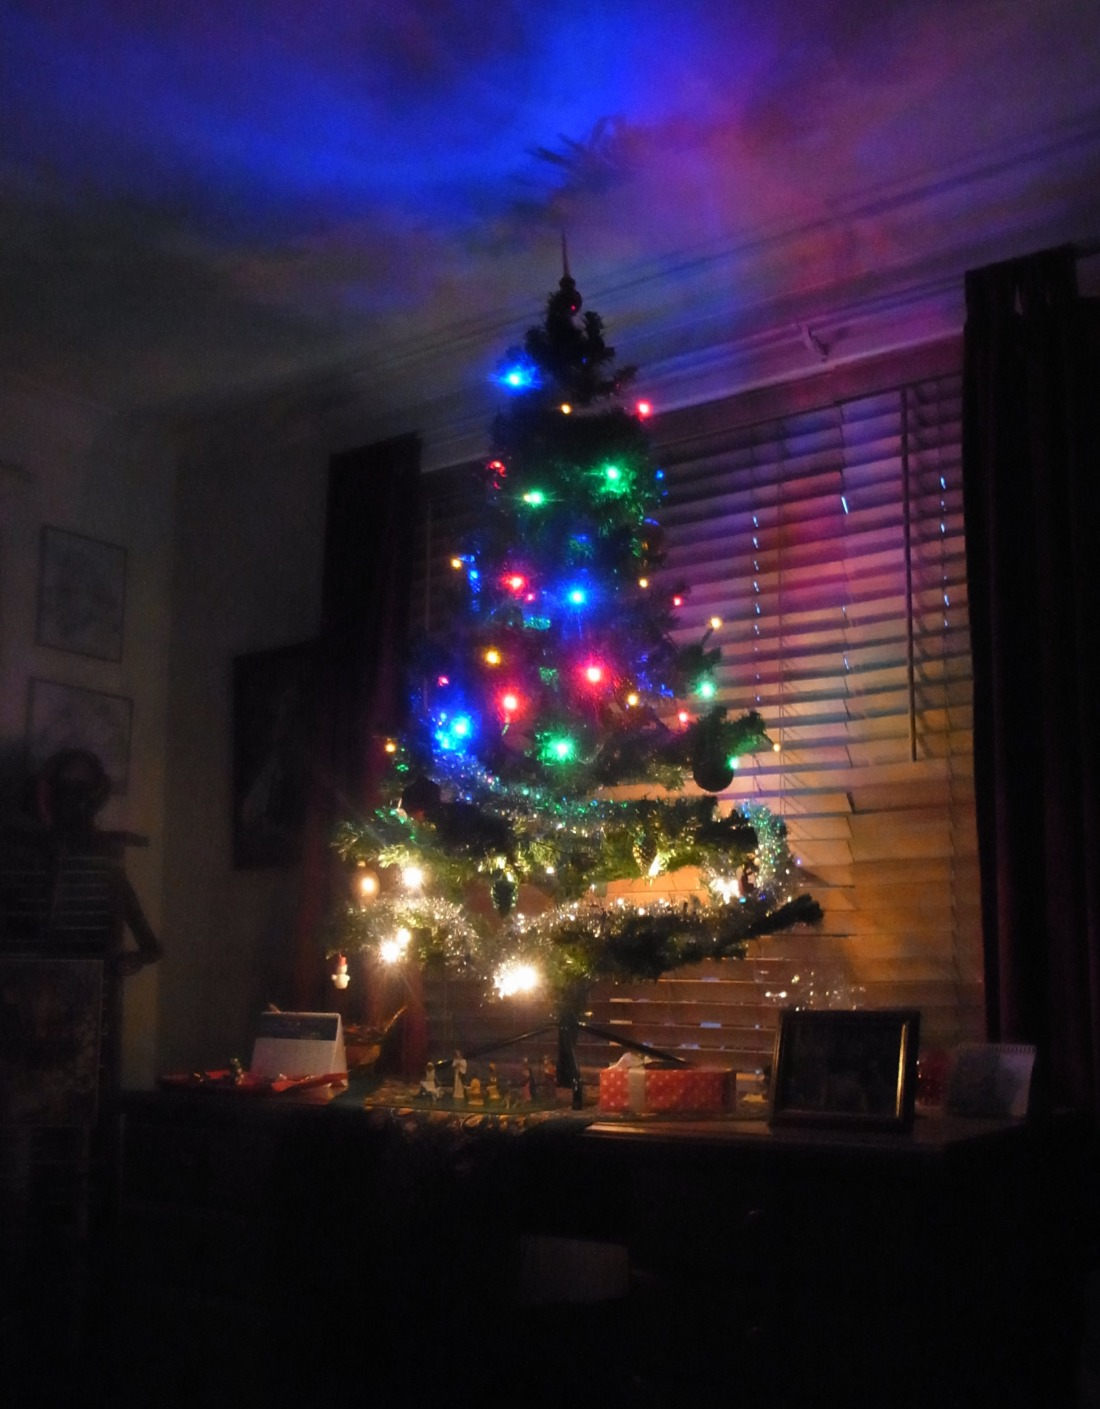 When we came back home, Peter took this picture of our Christmas Tree.